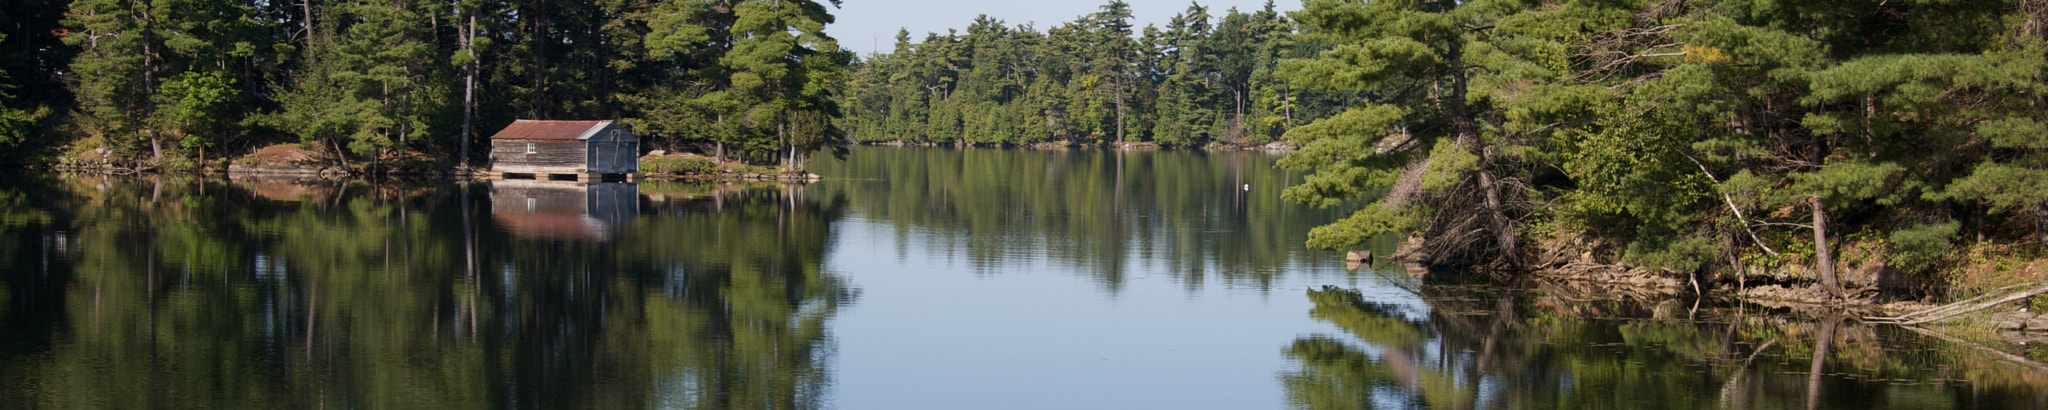 Photograph Lake by Rob Leavoy on 500px